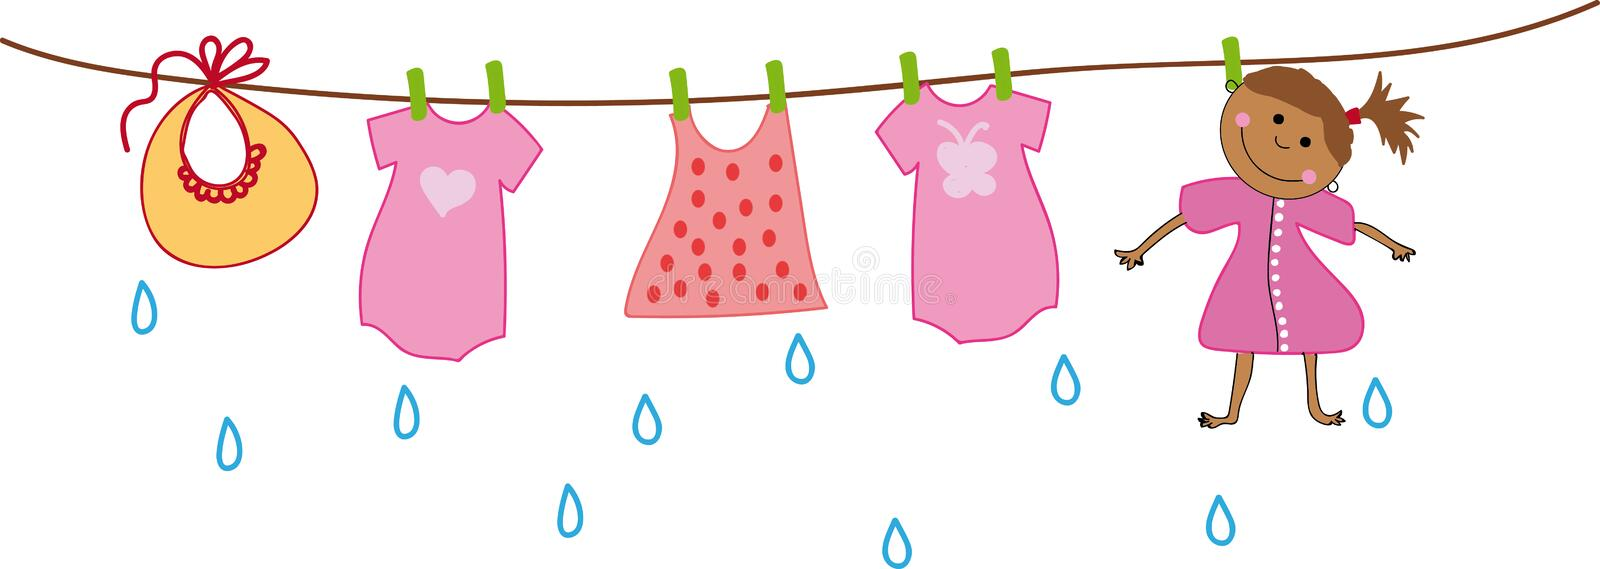 Girl dries on the clothesline with baby clothes. Illustrations on a transparent background stock illustration